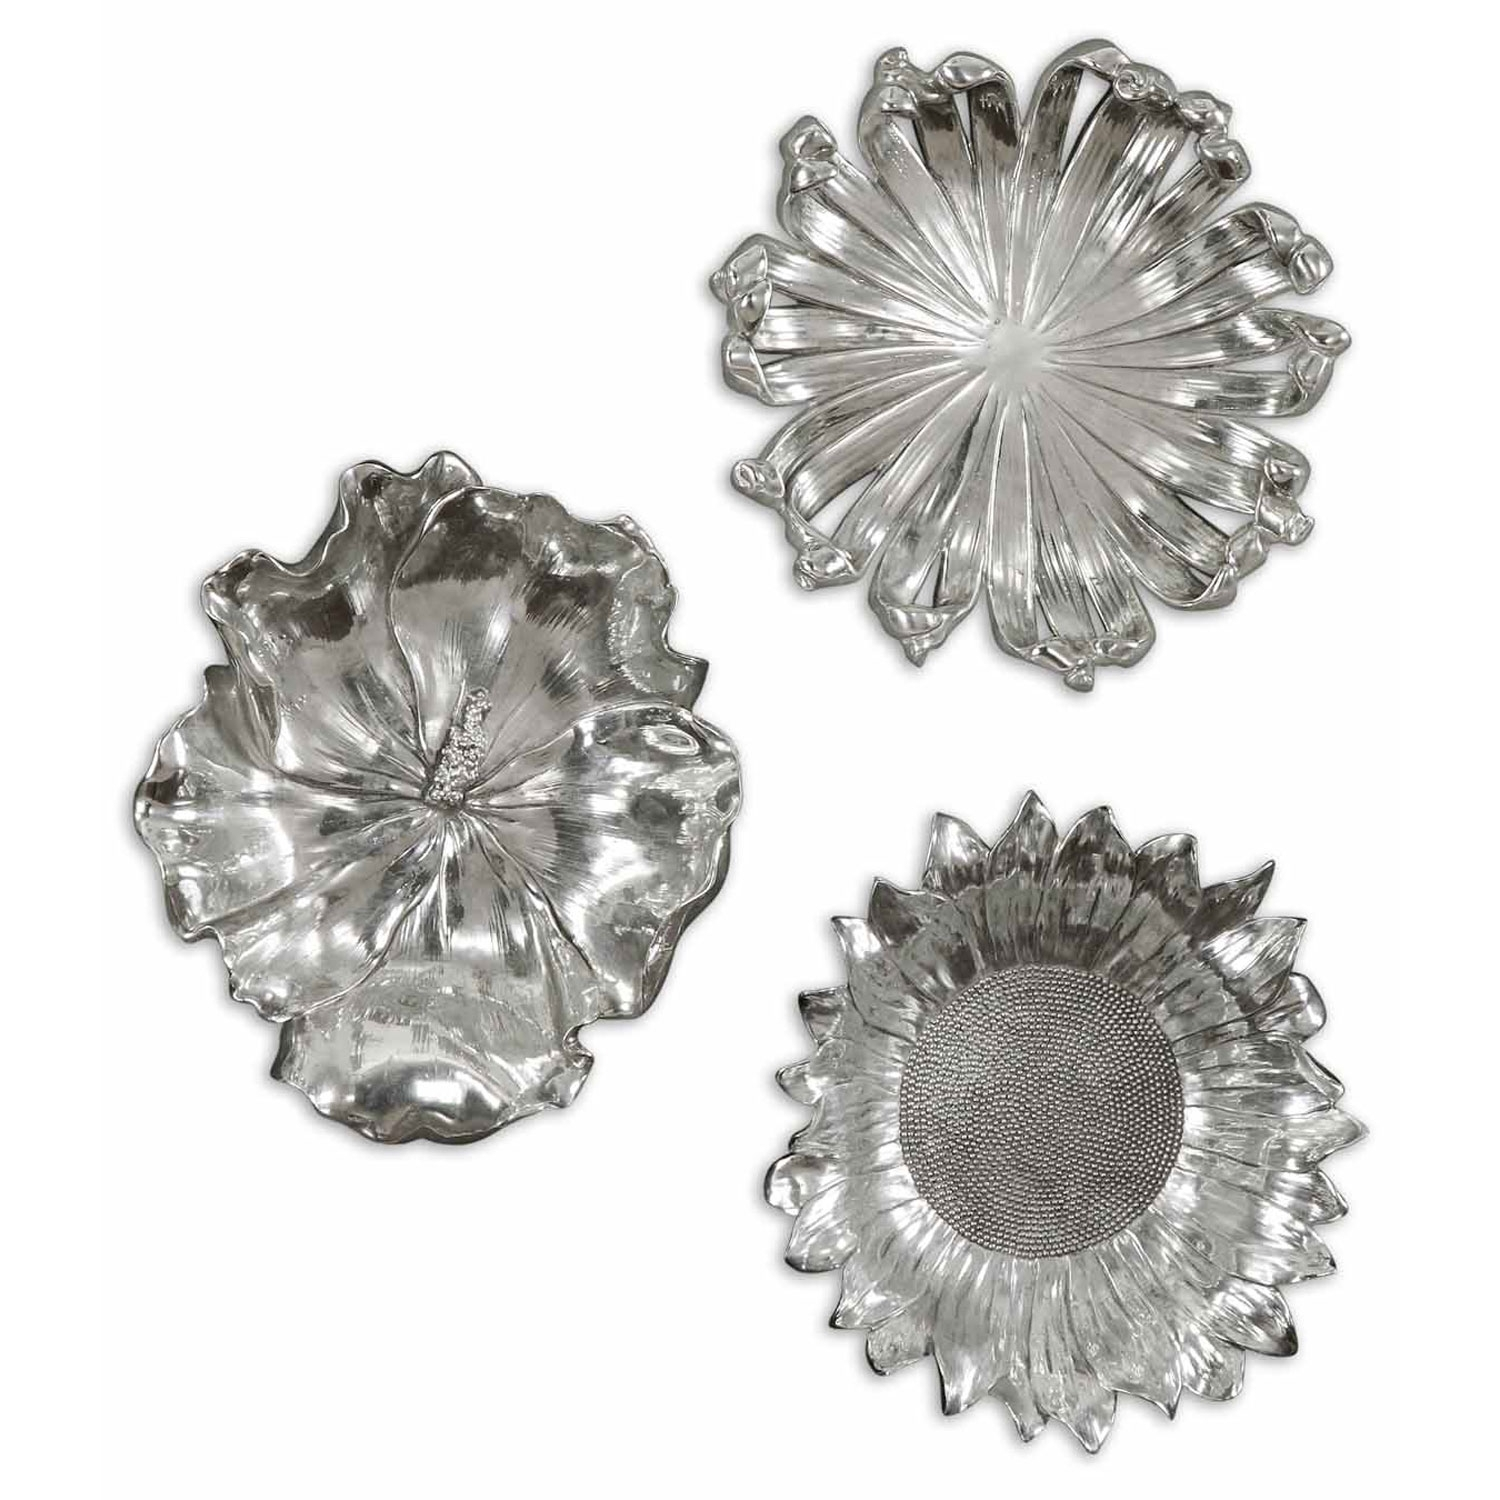 Uttermost Silver Flowers Metal Wall Art, Set Of Three 08503 | Bellacor Throughout Recent Silver Wall Art (View 5 of 20)